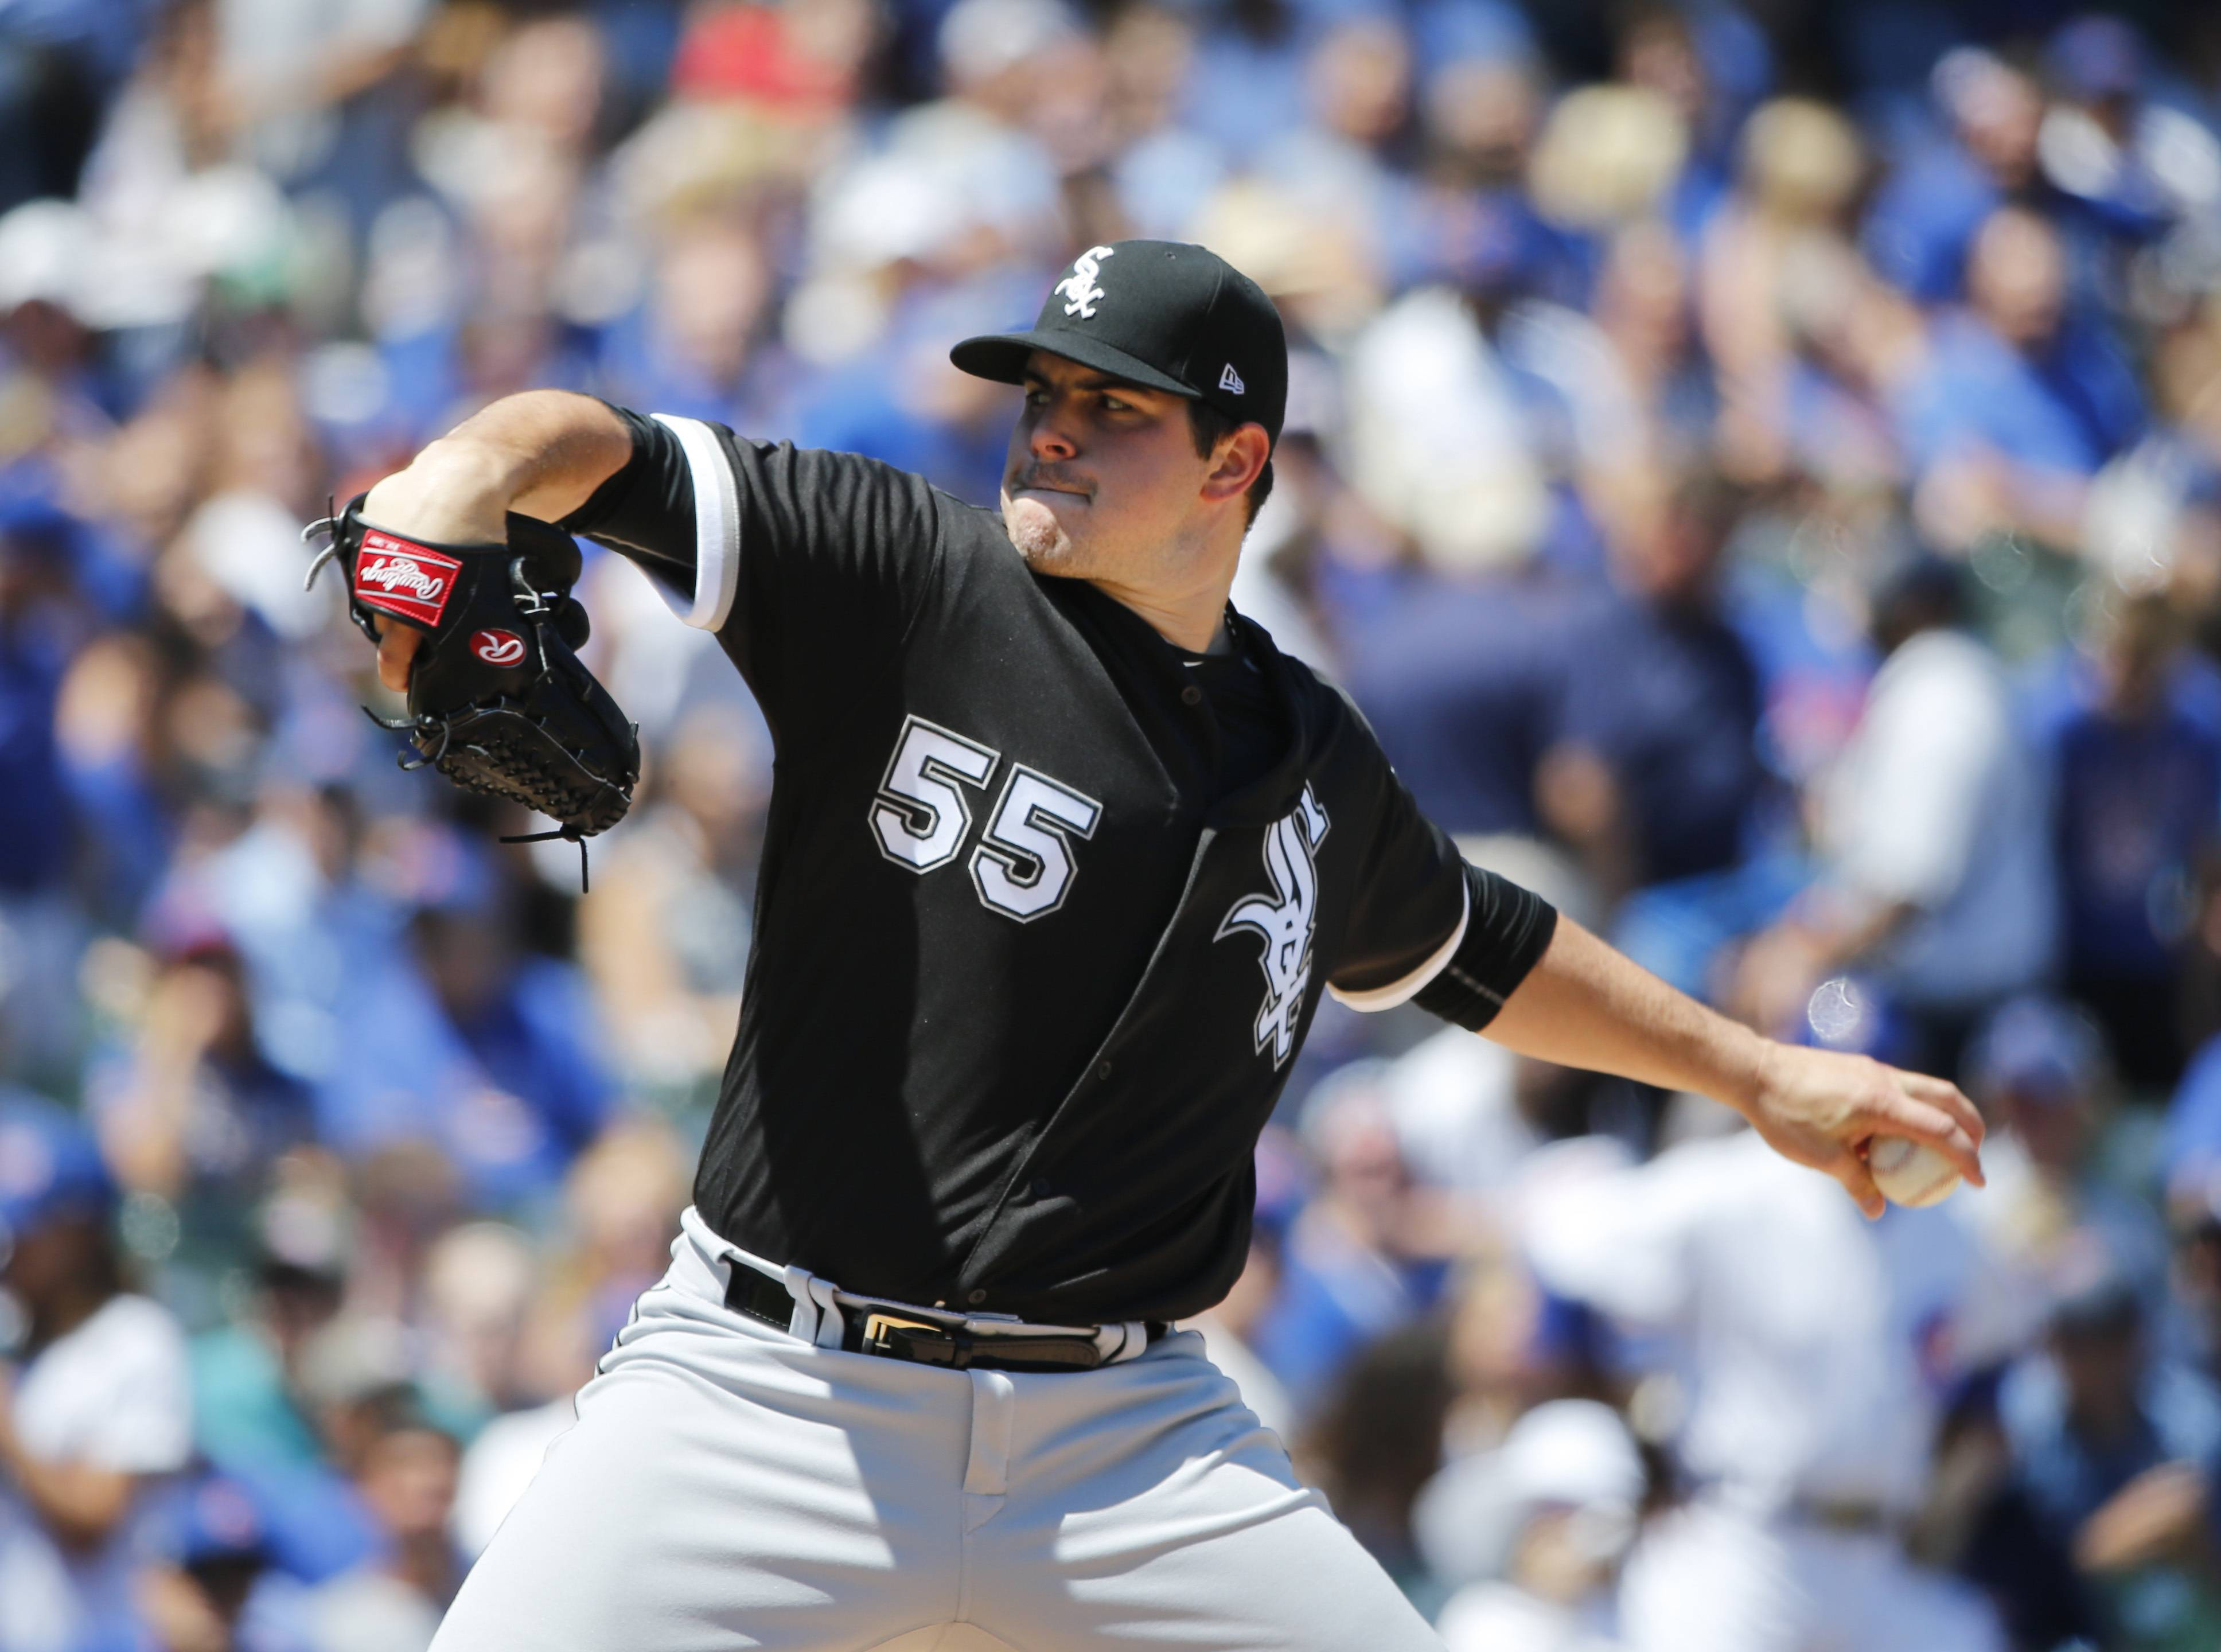 Chicago White Sox left-hander Carlos Rodon had 11 strikeouts in just 4 innings during Tuesday's start against he Chicago Cubs. It was an impressive feat, but another high pitch count (98) prevented Rodon from making it to the fifth inning.